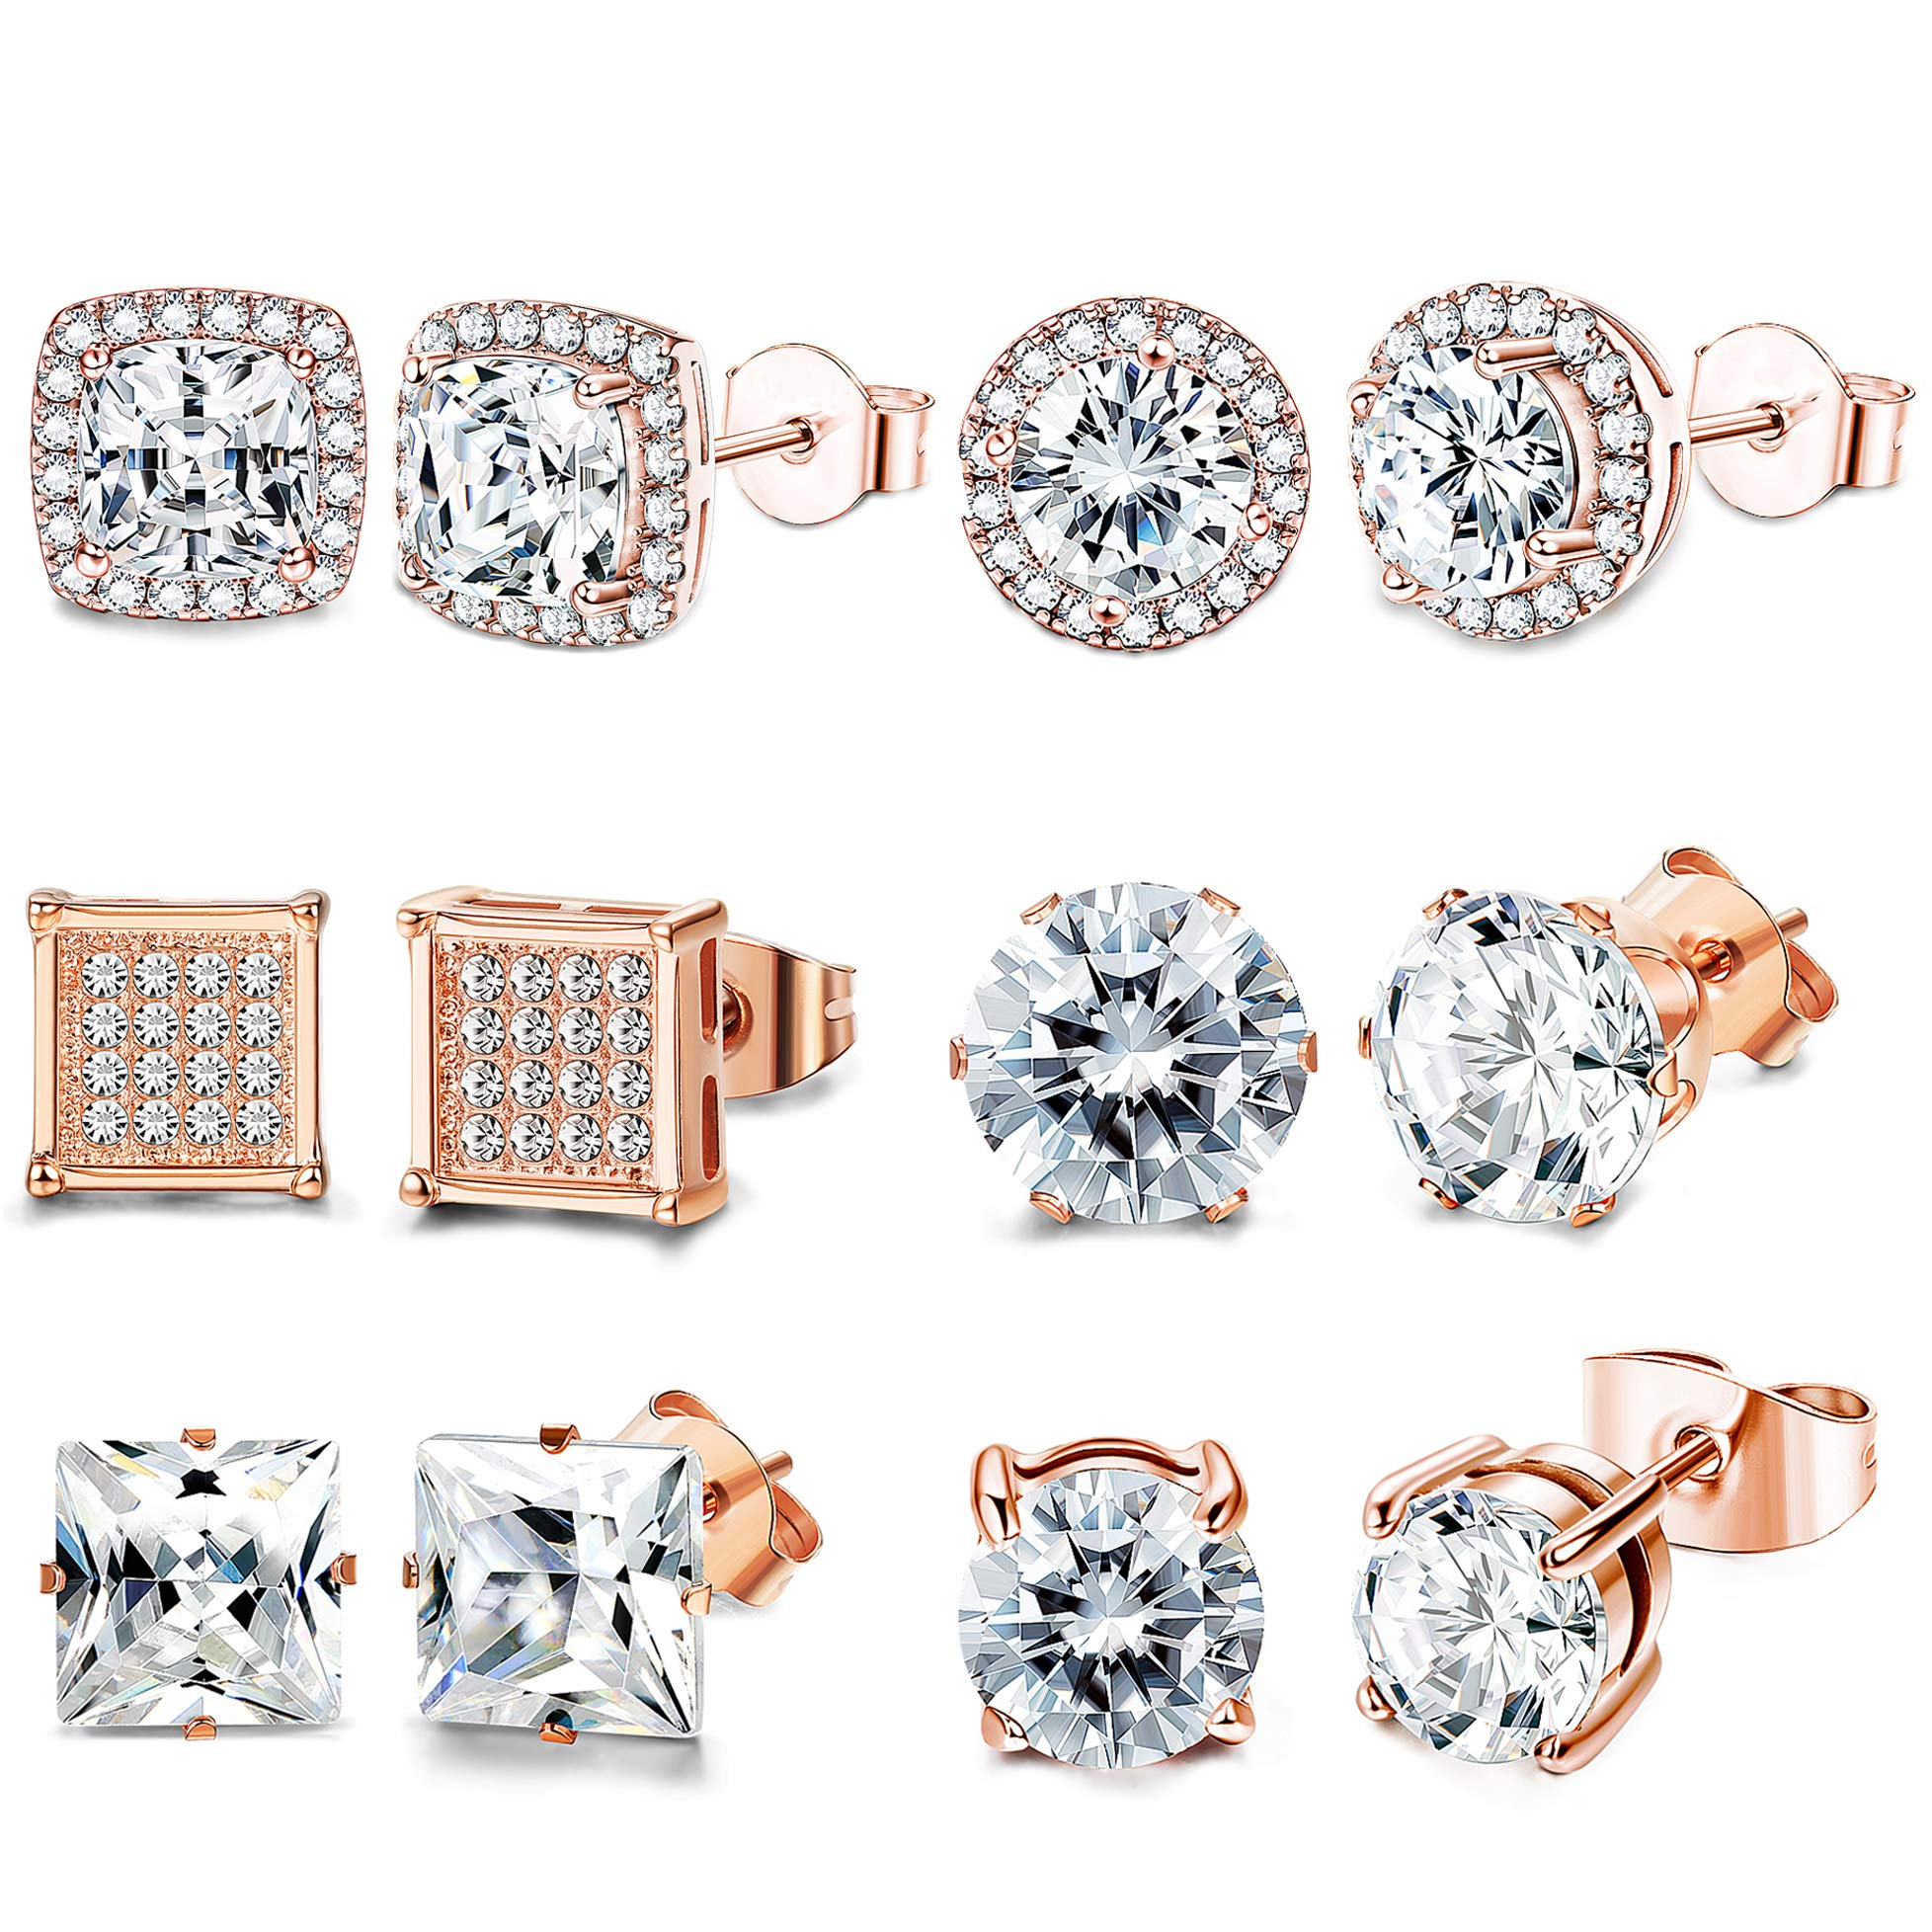 FIBO STEEL 6 Pairs Cubic Zirconia Stud Earrings Set For Women Shining CZ Halo Square Round Earrings Rose Gold by FIBO STEEL